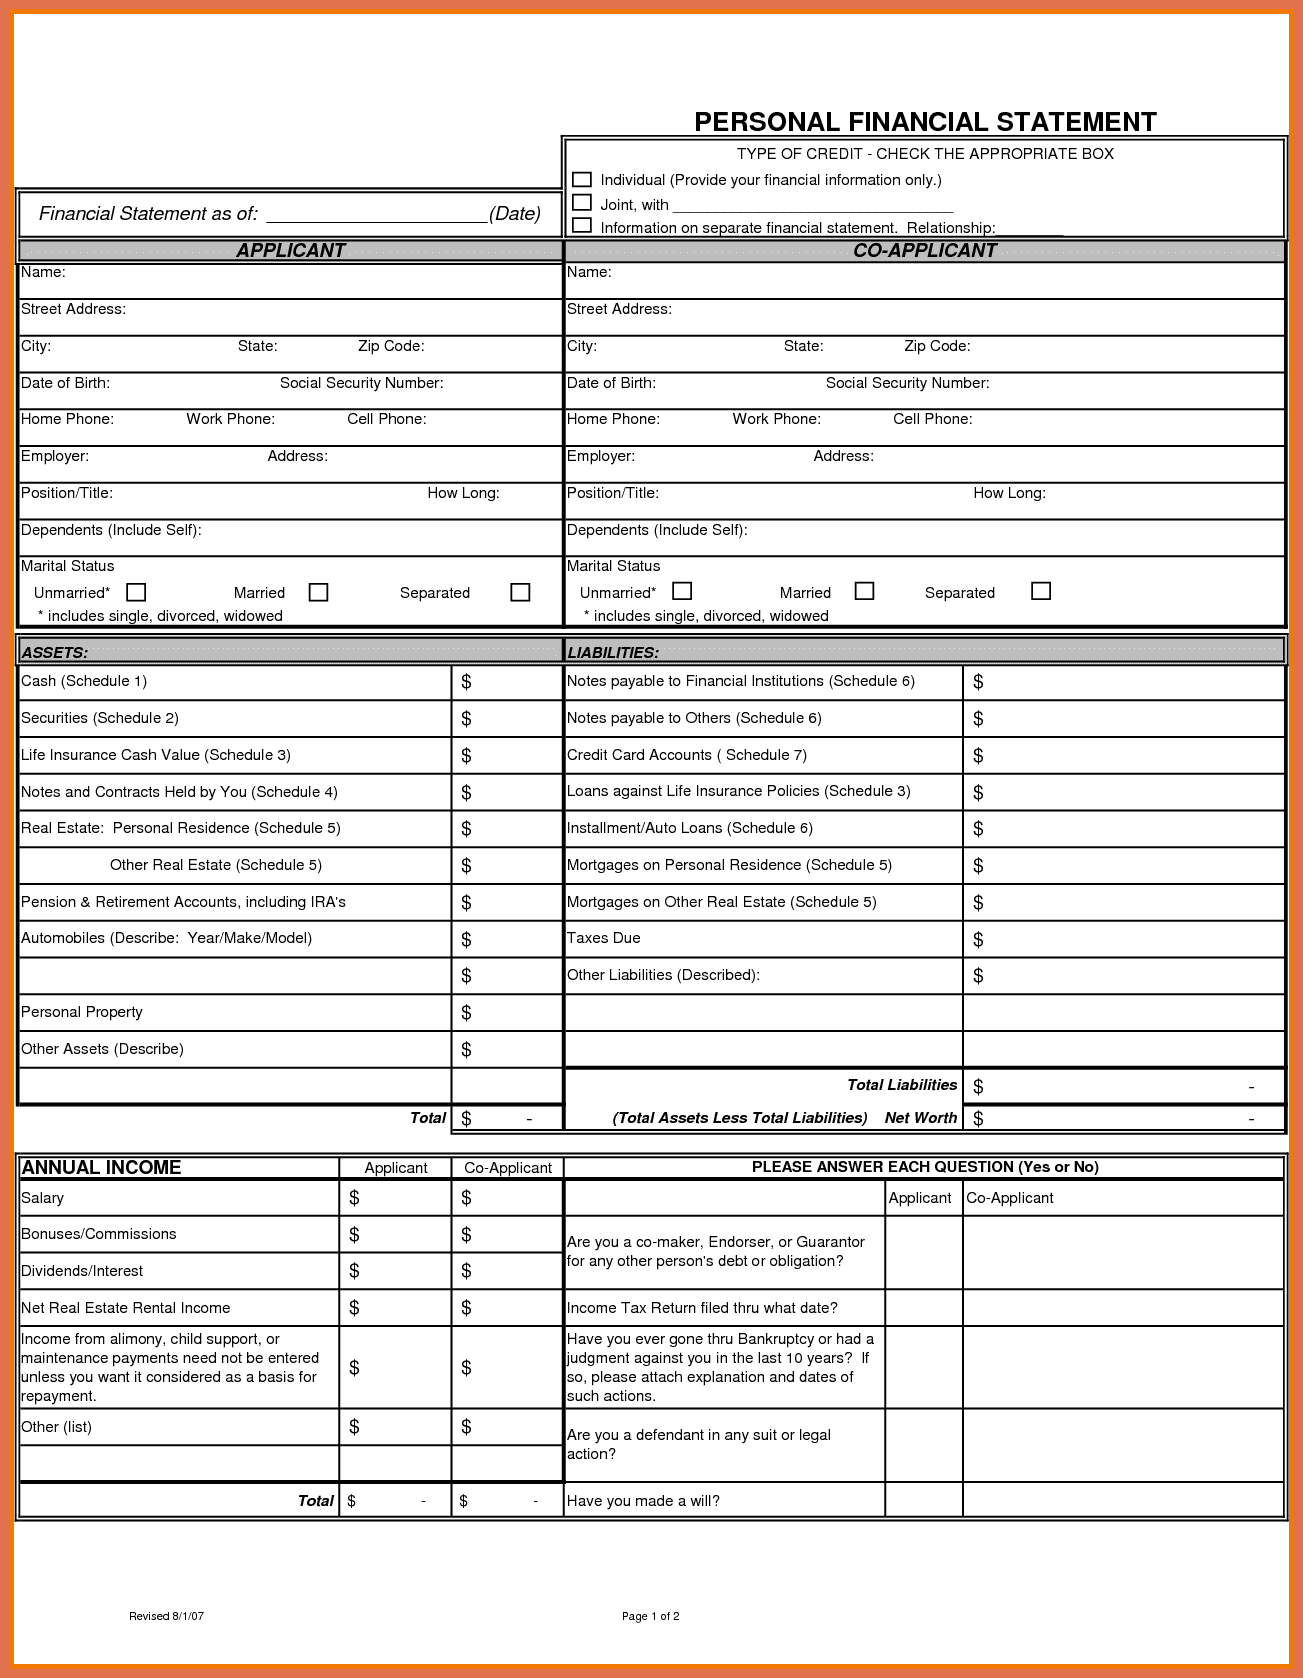 Personal Financial Statement Template Google Docs And Personal Financial Statement Template Bank